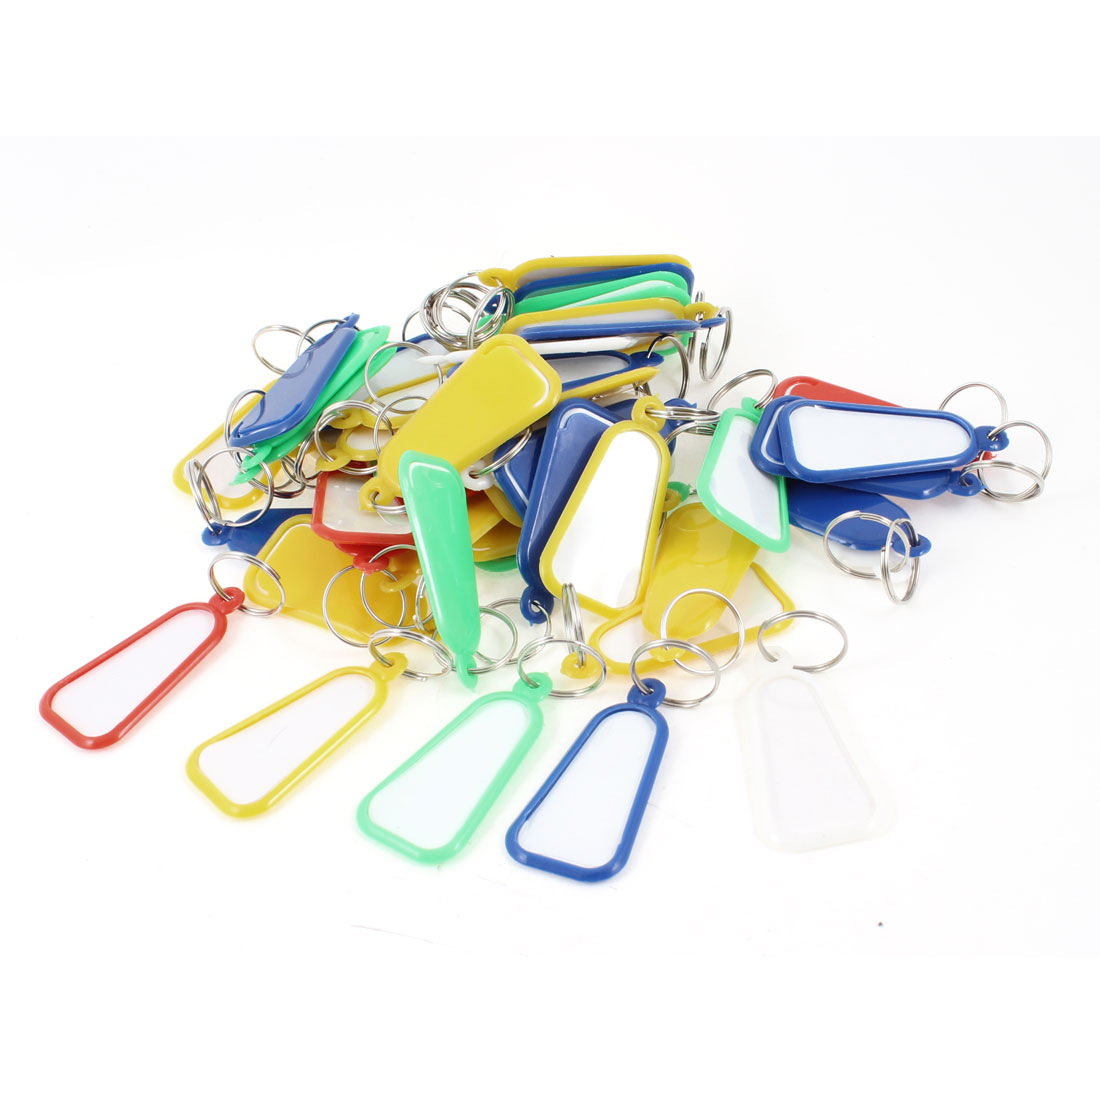 50 Pcs Colorful Fanshaped Pandent ID Key Labels Tags